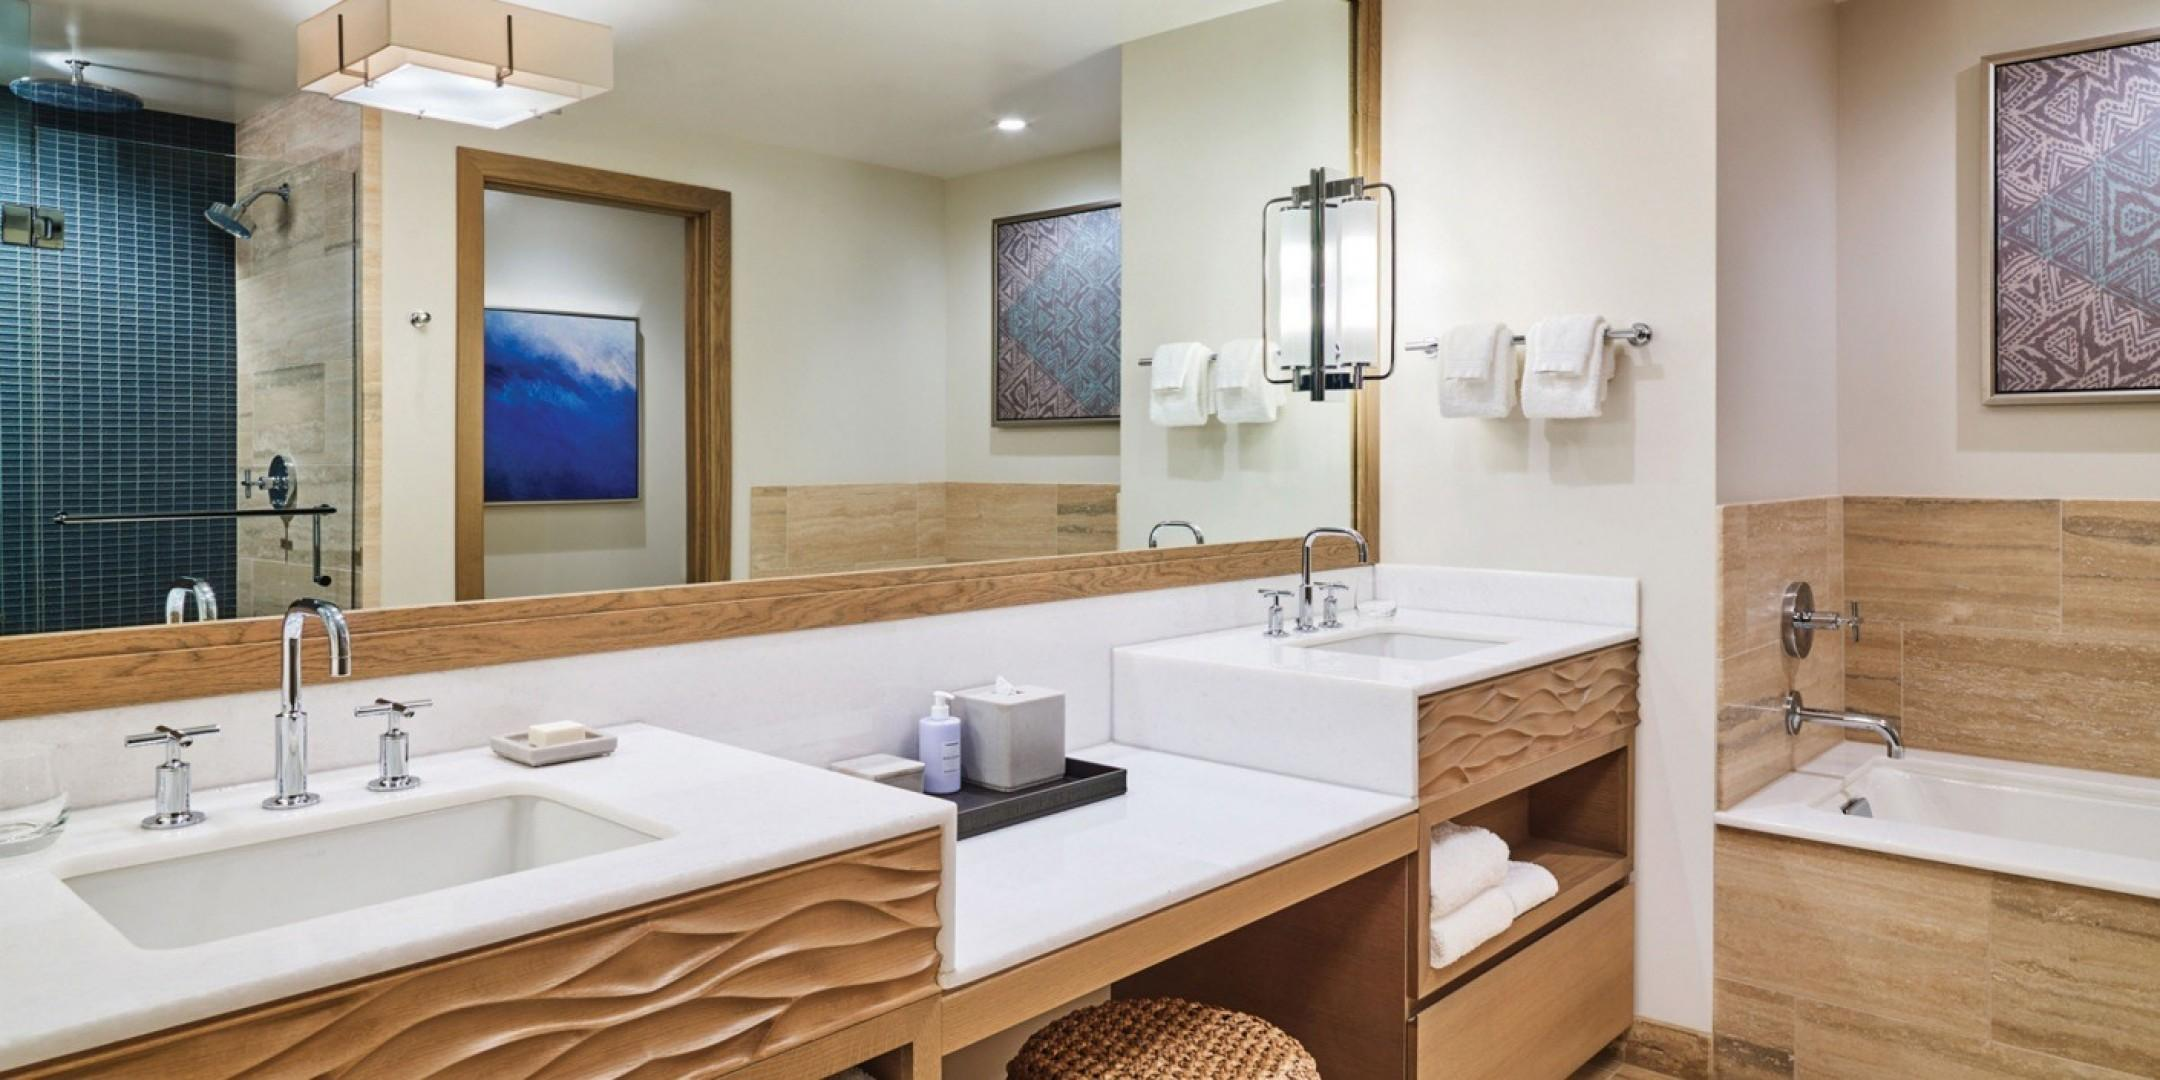 The spa-like bathrooms at Hokuala feature deep tubs, separate showers, and dual vanities.